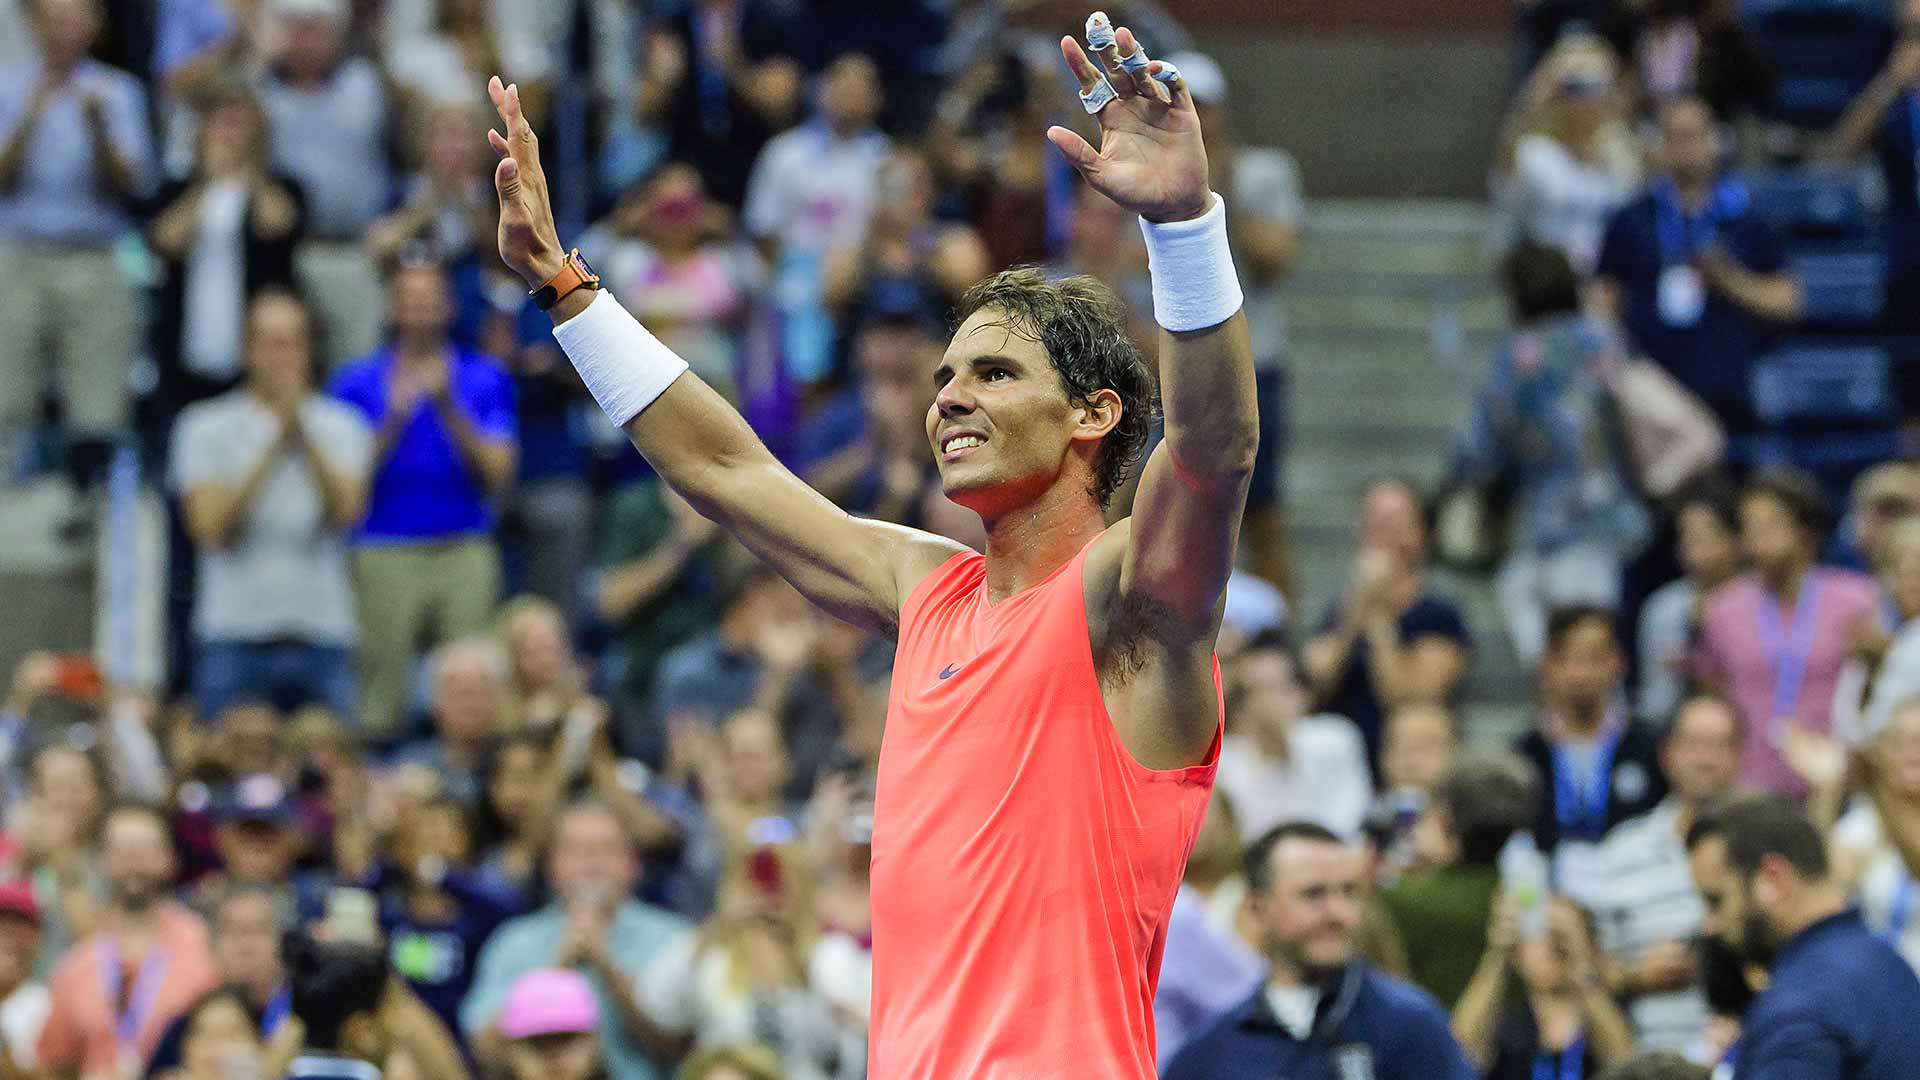 Rafael Nadal is the second seed at the US Open.